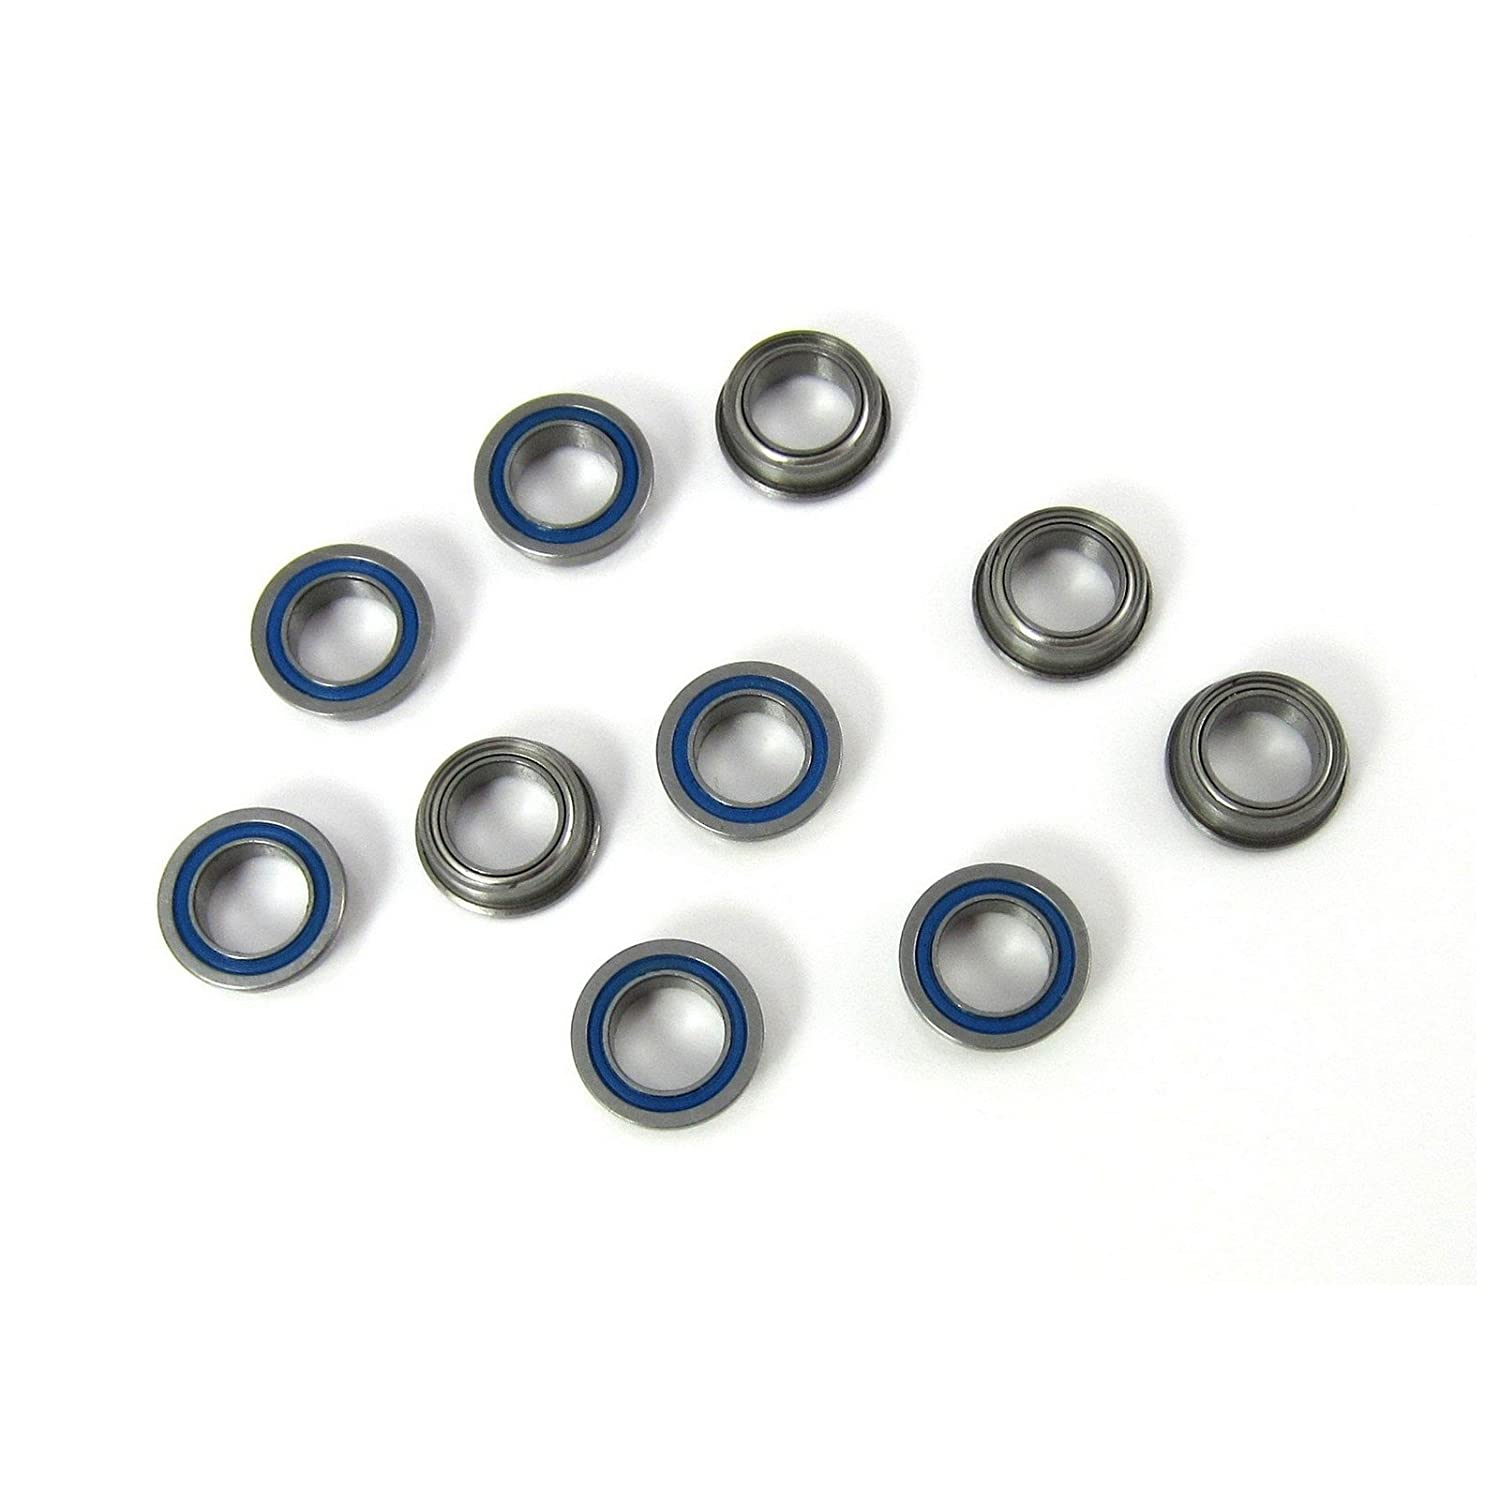 1/4x3/8x1/8 Flanged Precision Ball Bearings ABEC 5 Hybrid Seals (10) TRB RC